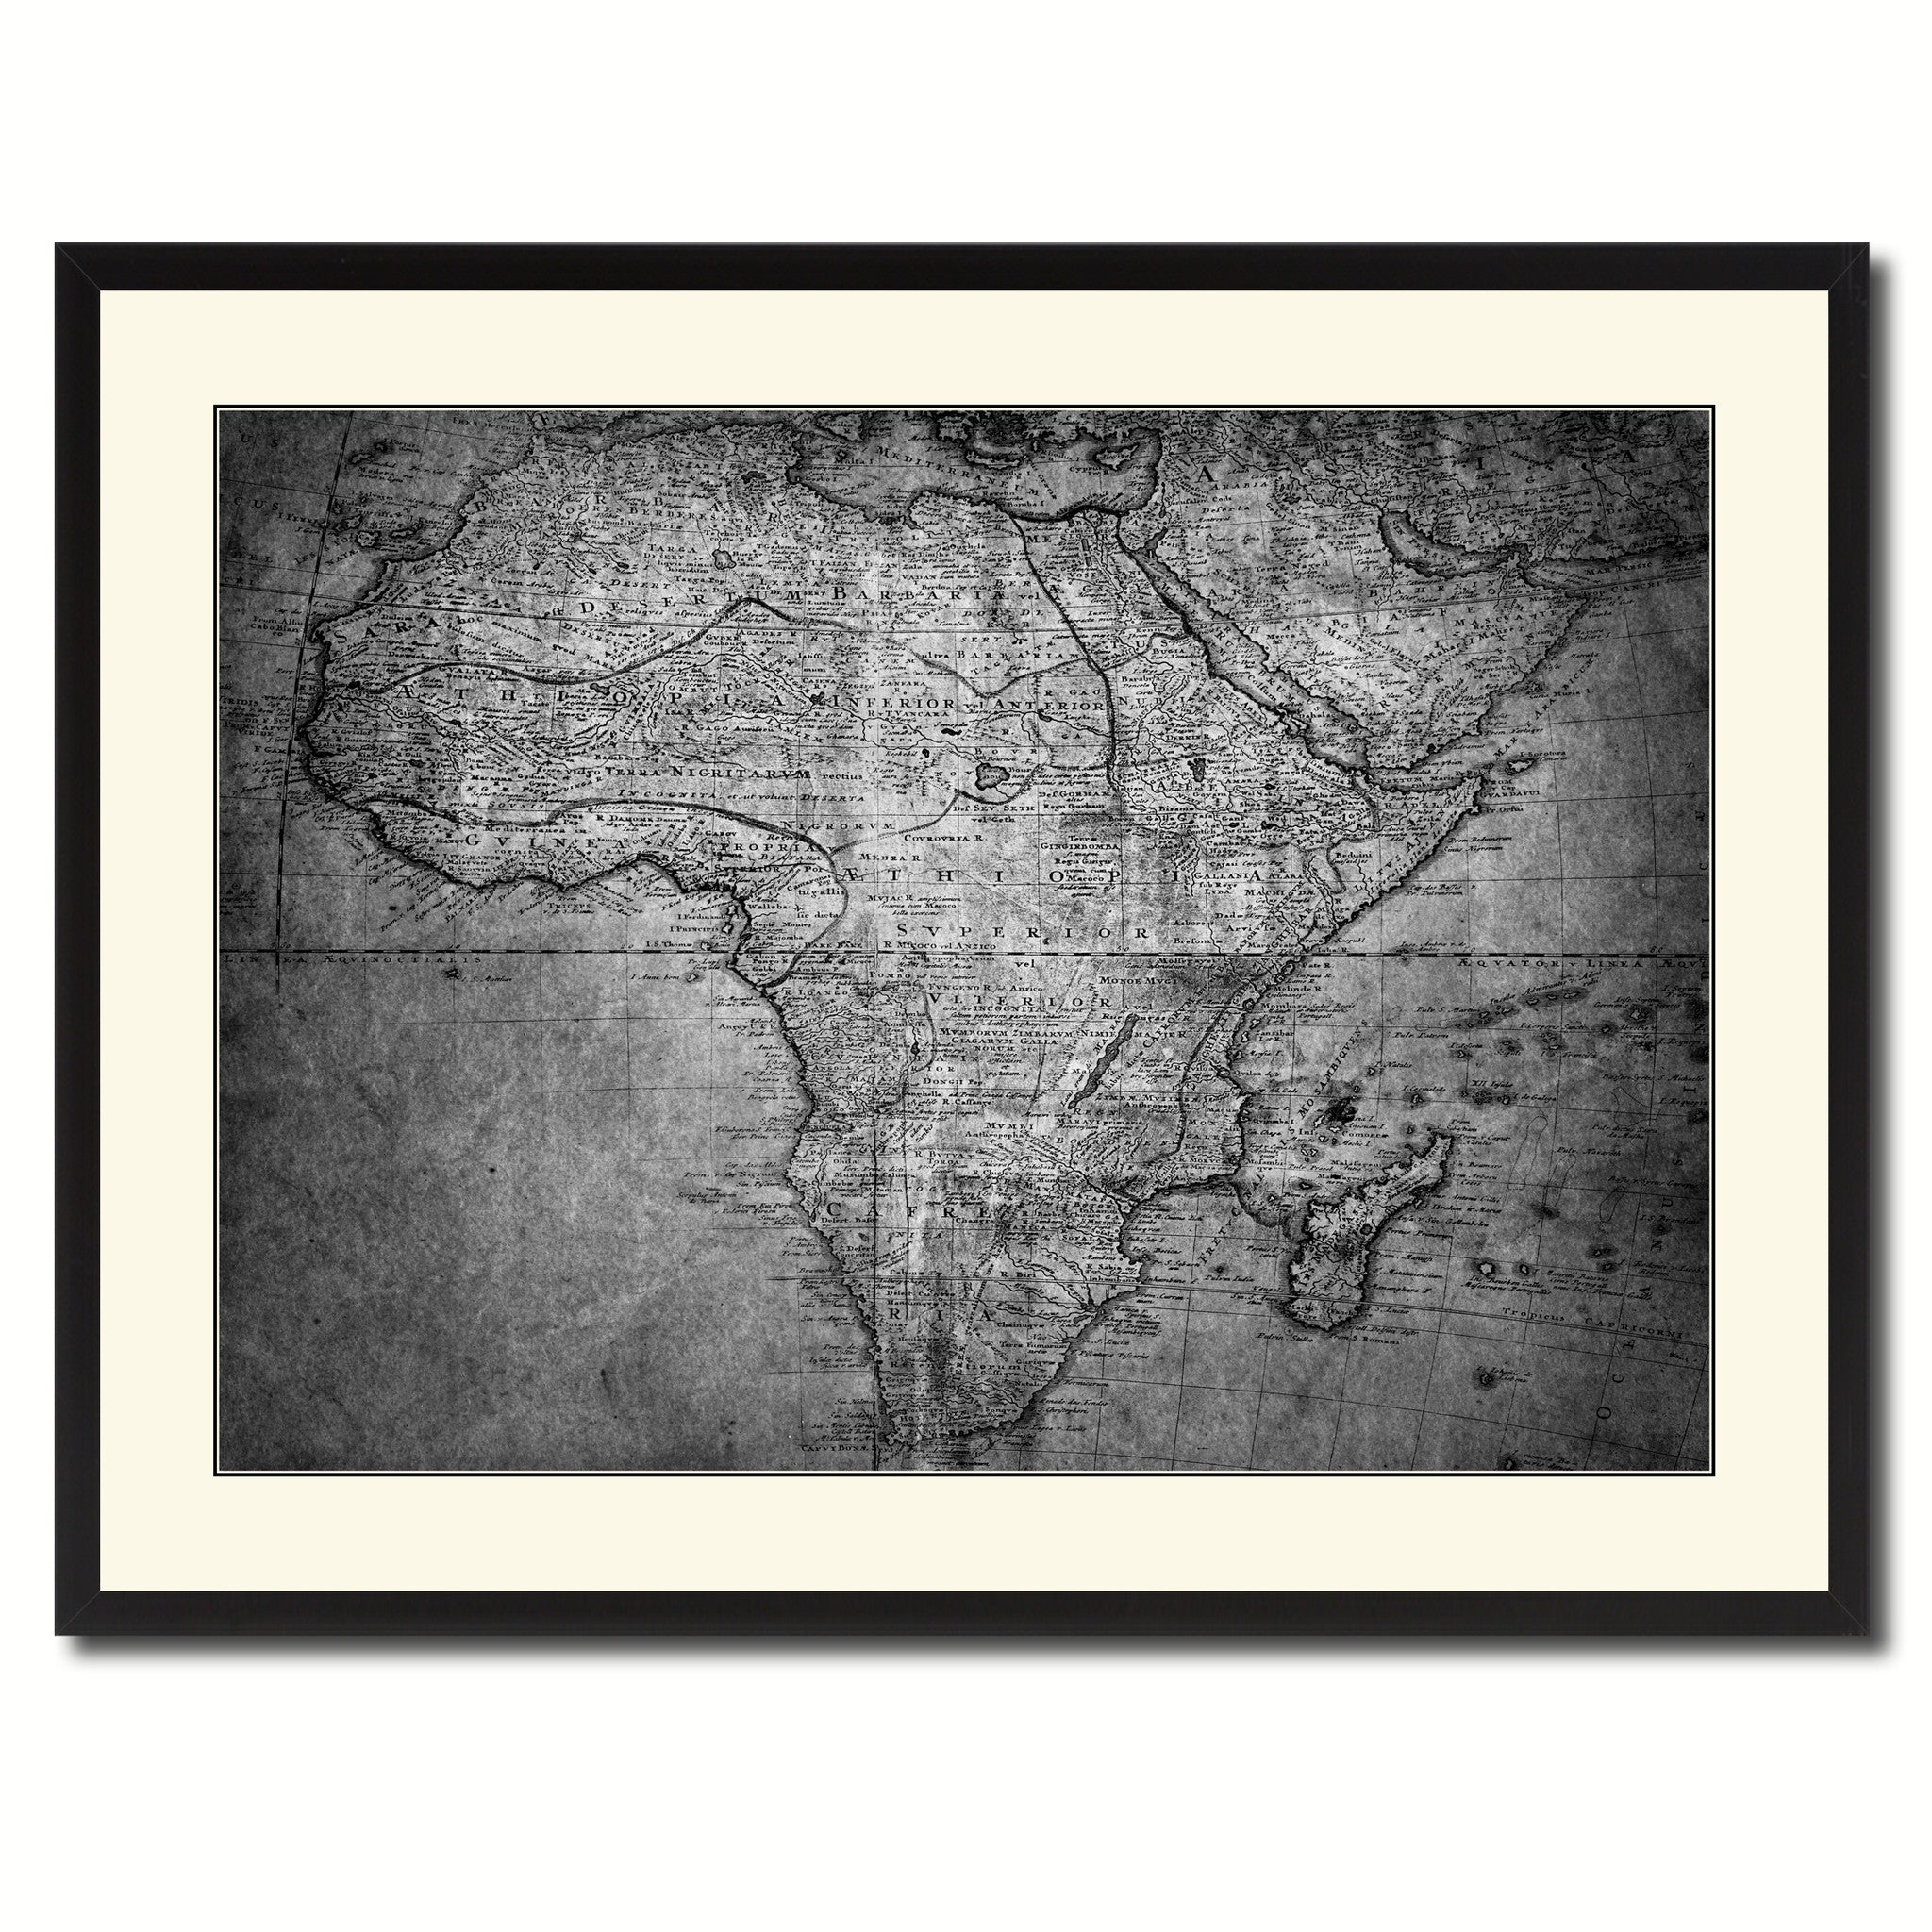 Africa Mapmaker Vintage B&W Map Canvas Print, Picture Frame Home Decor Wall Art Gift Ideas